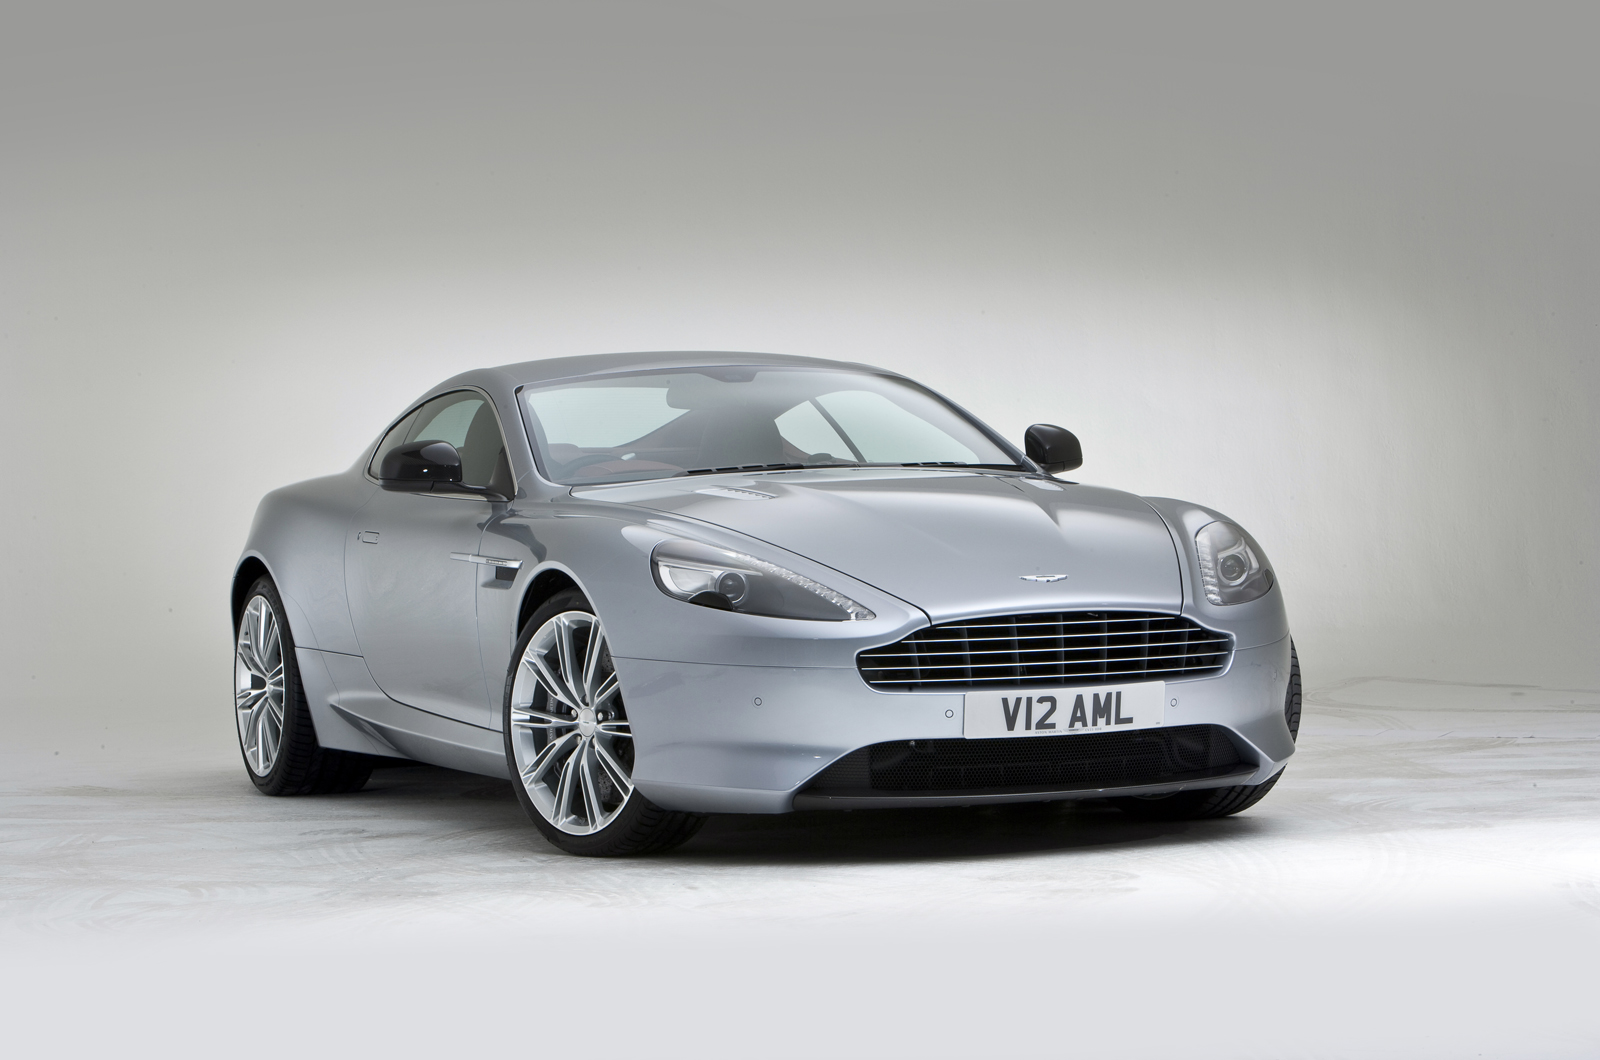 Aston Martin DB9 Facelifting Wallpaper For Computer